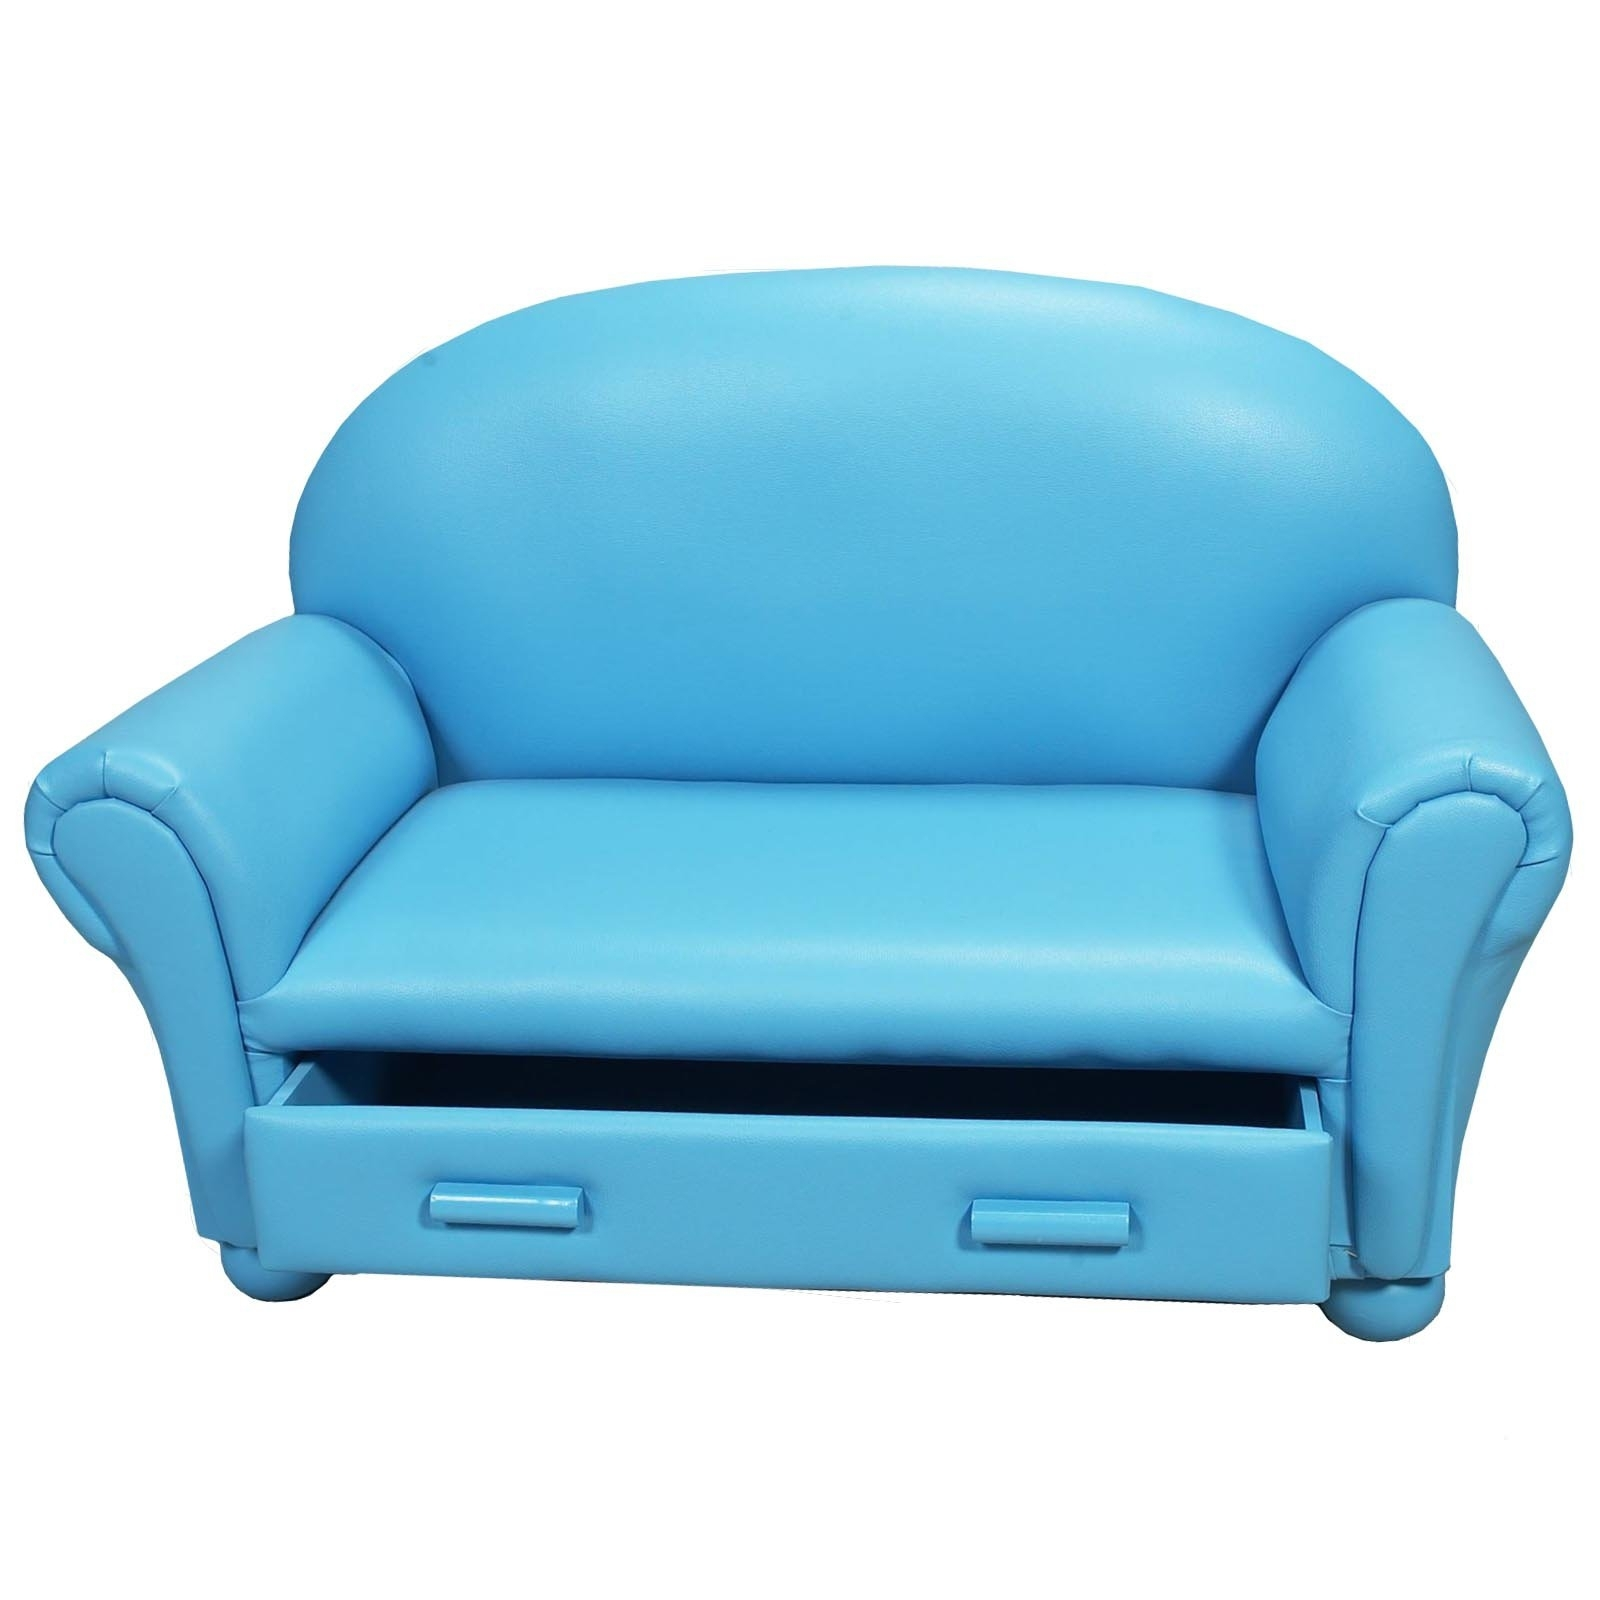 Trendy Childrens Sofas Intended For Childrens Sofa With Storage Drawer – Walmart (View 1 of 20)